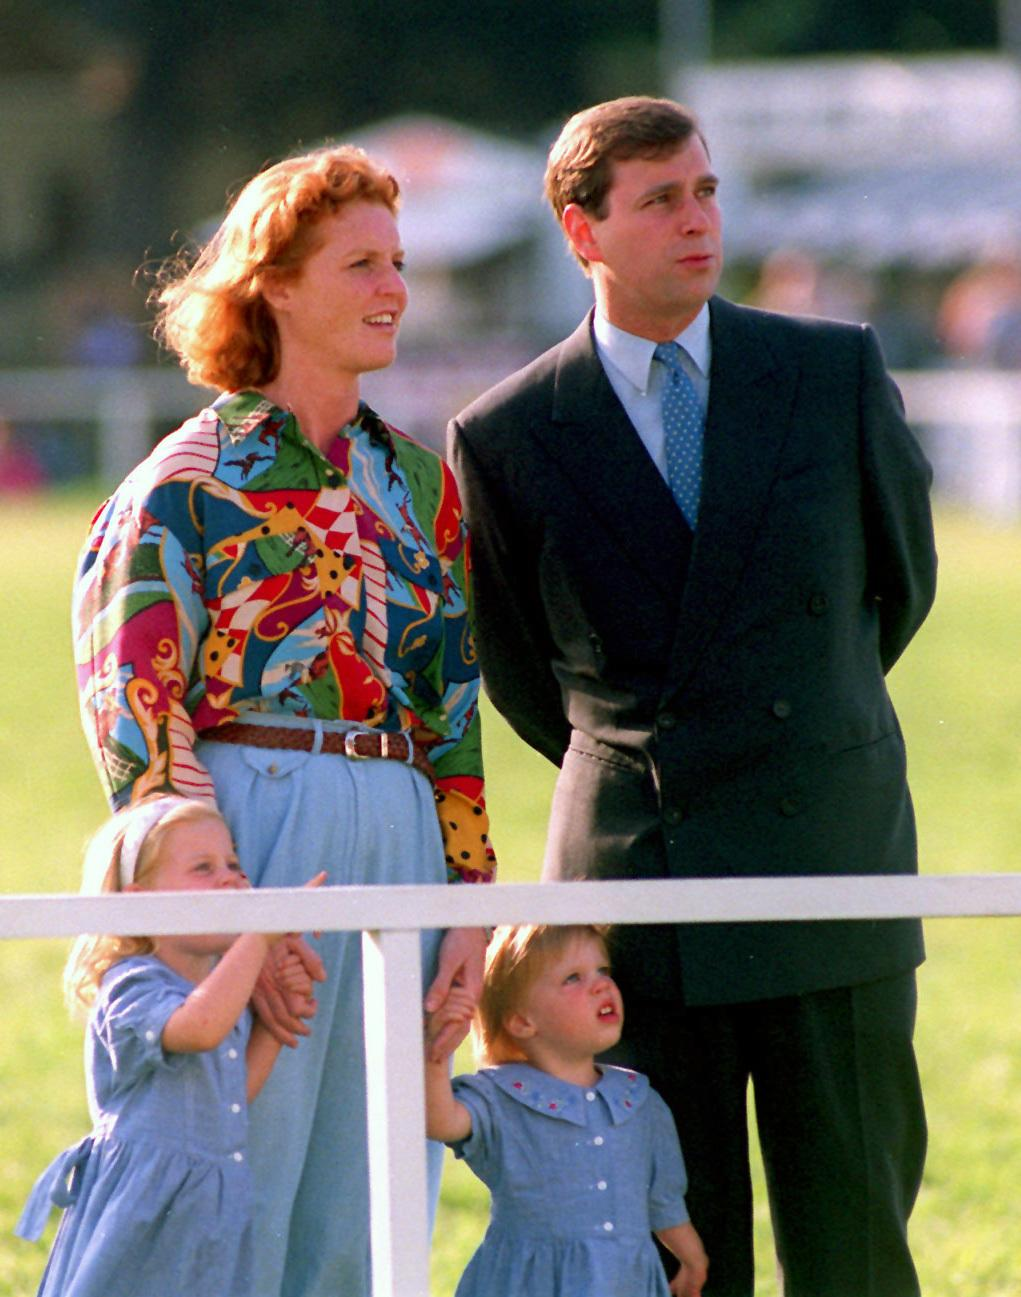 The Duke and Duchess of York attending the Royal Windsor Horse Show with their daughters Princess Beatrice (left) and Eugenie.  16/04/1996 : The couple announced that their marriage is to be formally ended in divorce, following more than two years separation.